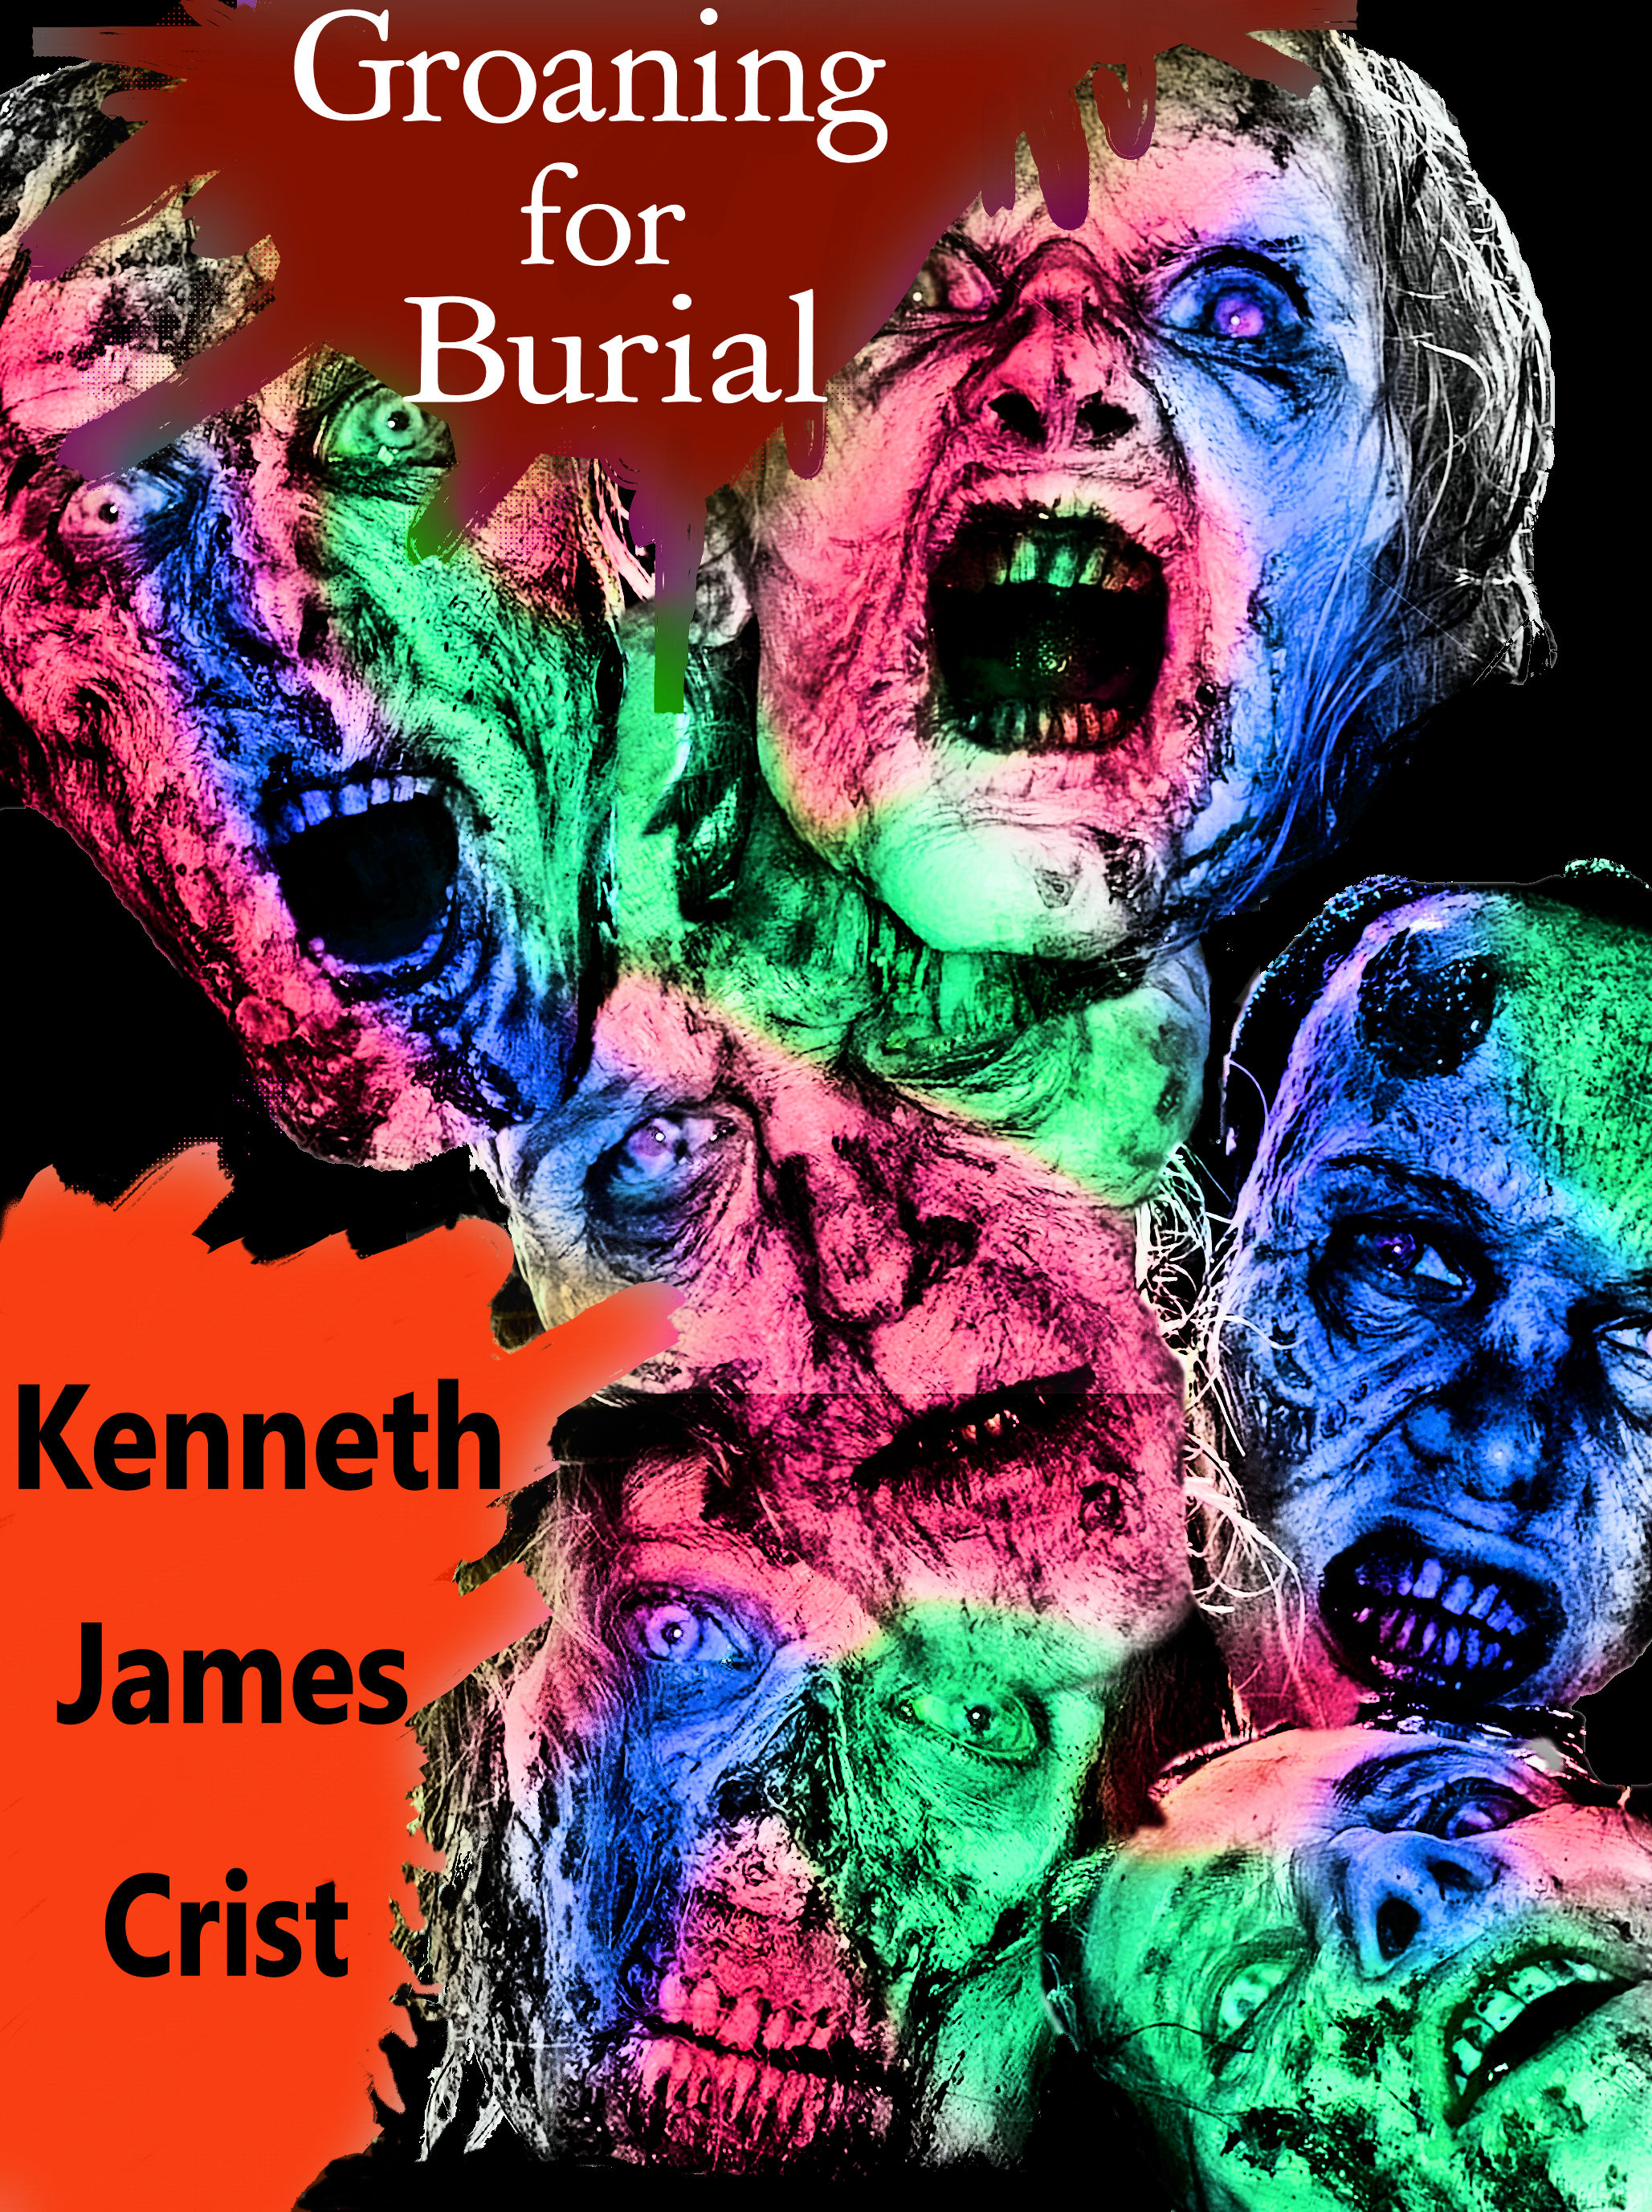 Groaning for Burial 2 fonts color enhanced.jpg